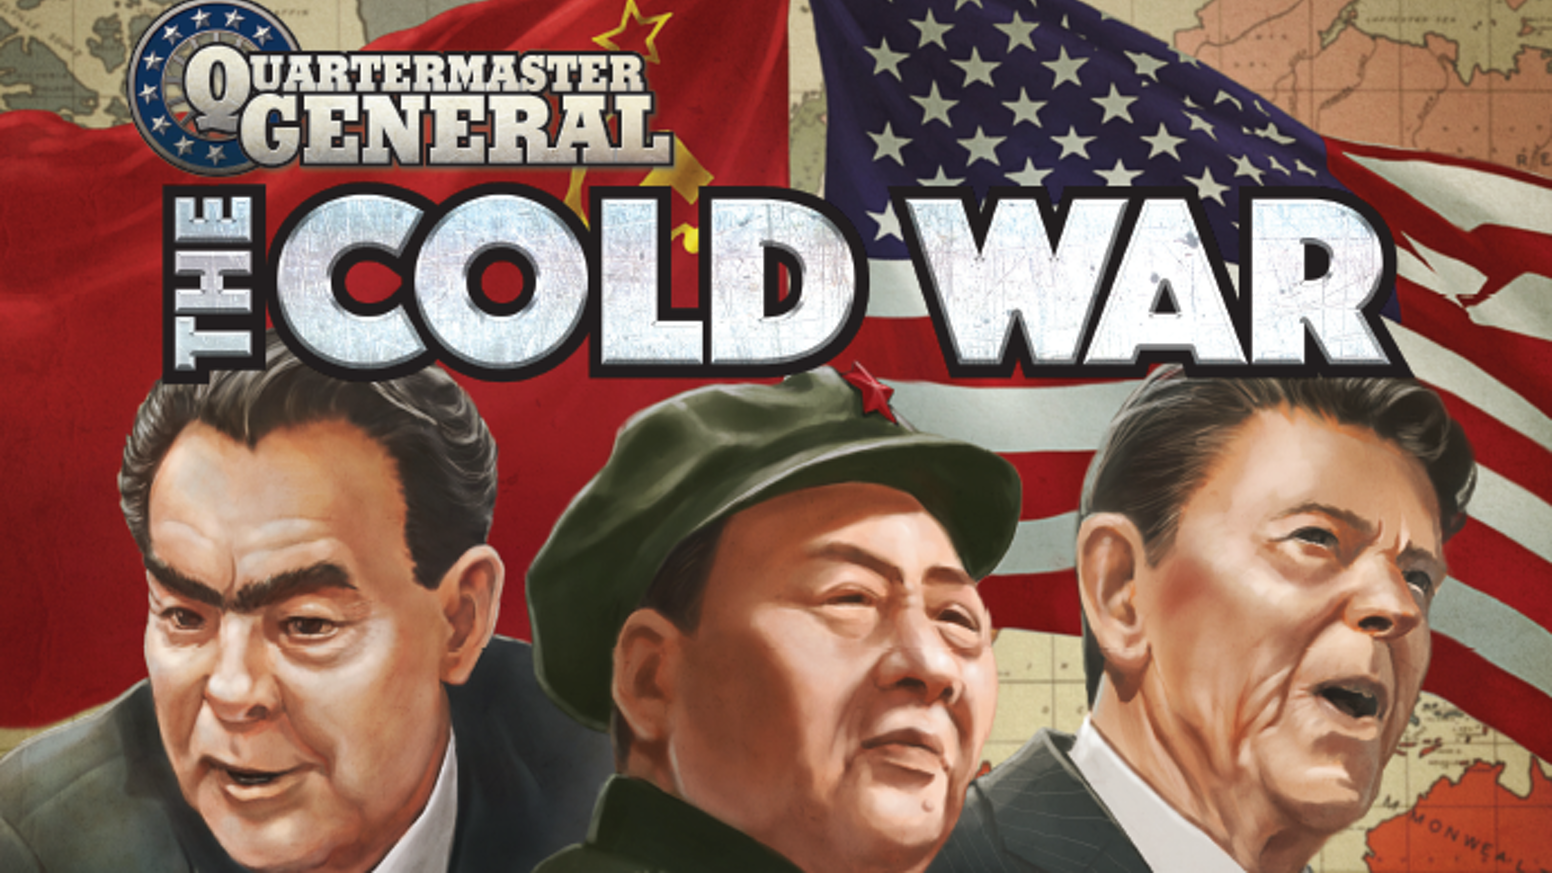 Ian Brody's acclaimed card-driven Quartermaster General series heads into the Nuclear Age!